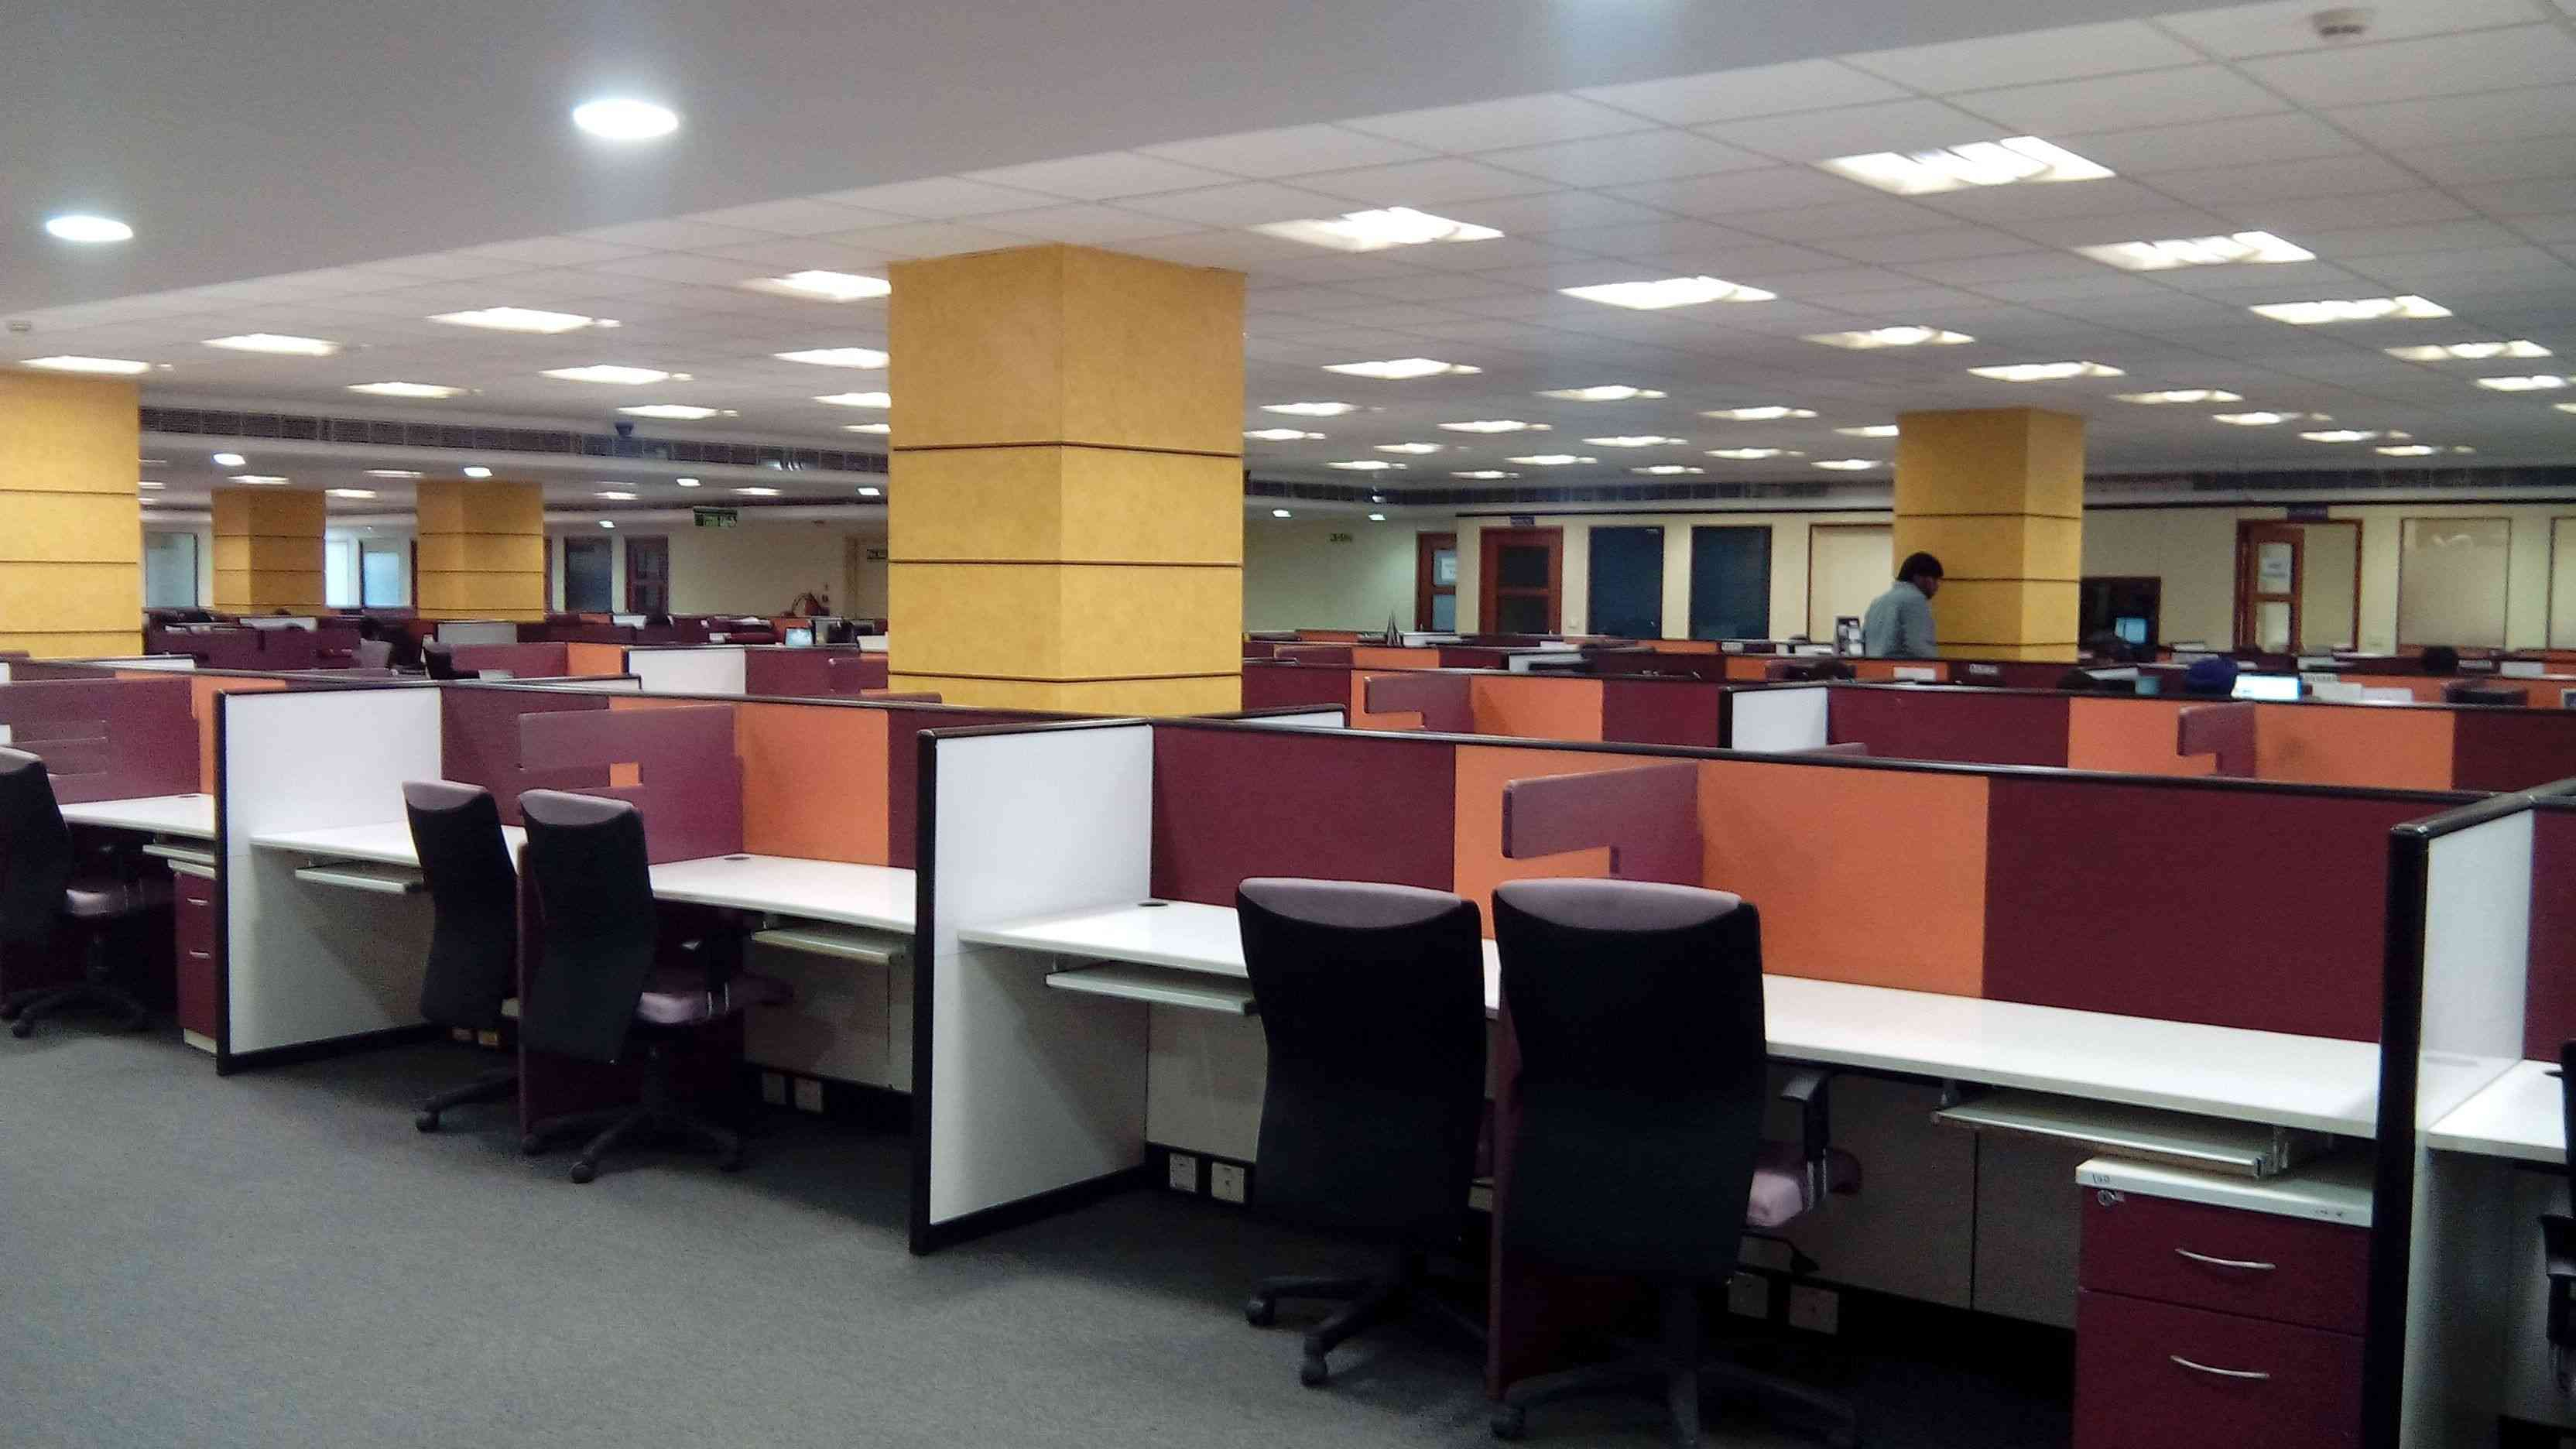 renting Services in Noida,Rent Space in Noida,